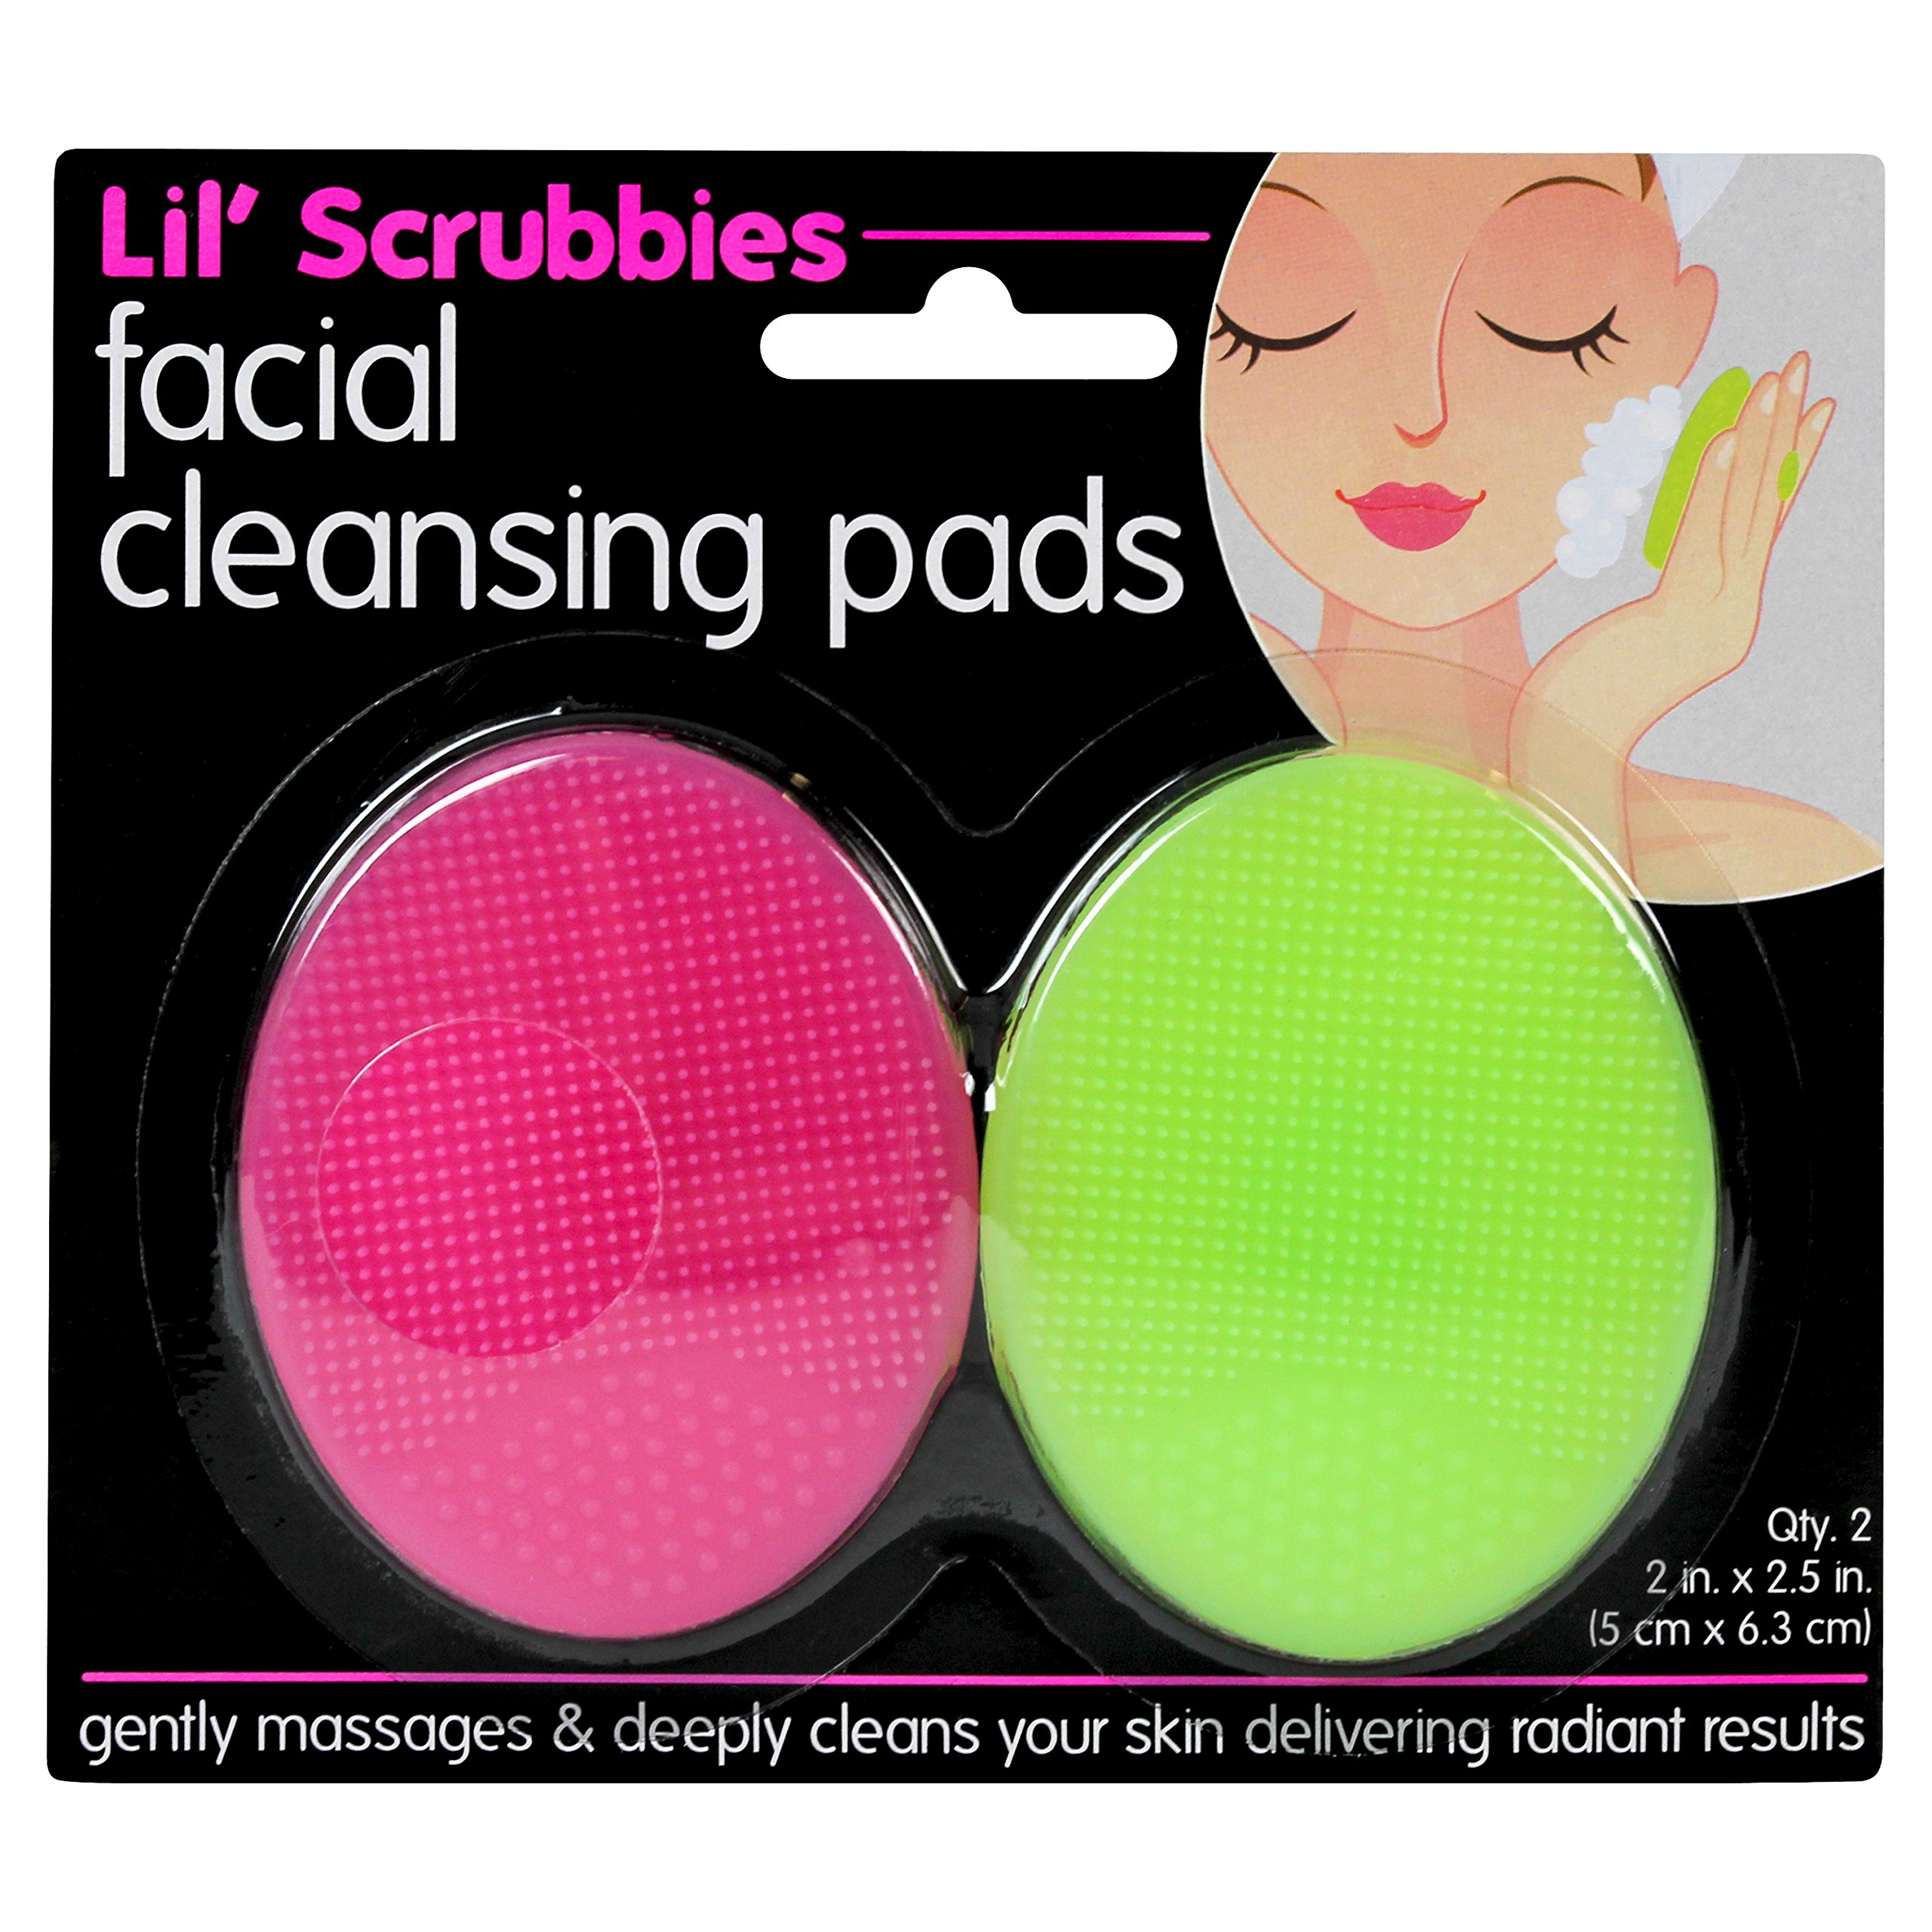 Baby Blue Soft Silicone Facial Cleaning Pad Brush Cosmetic for Women [ Huxley ] Secret of Sahara Cream  Fresh and More 50ml / 1.69fl. oz., By glow recipe huxley